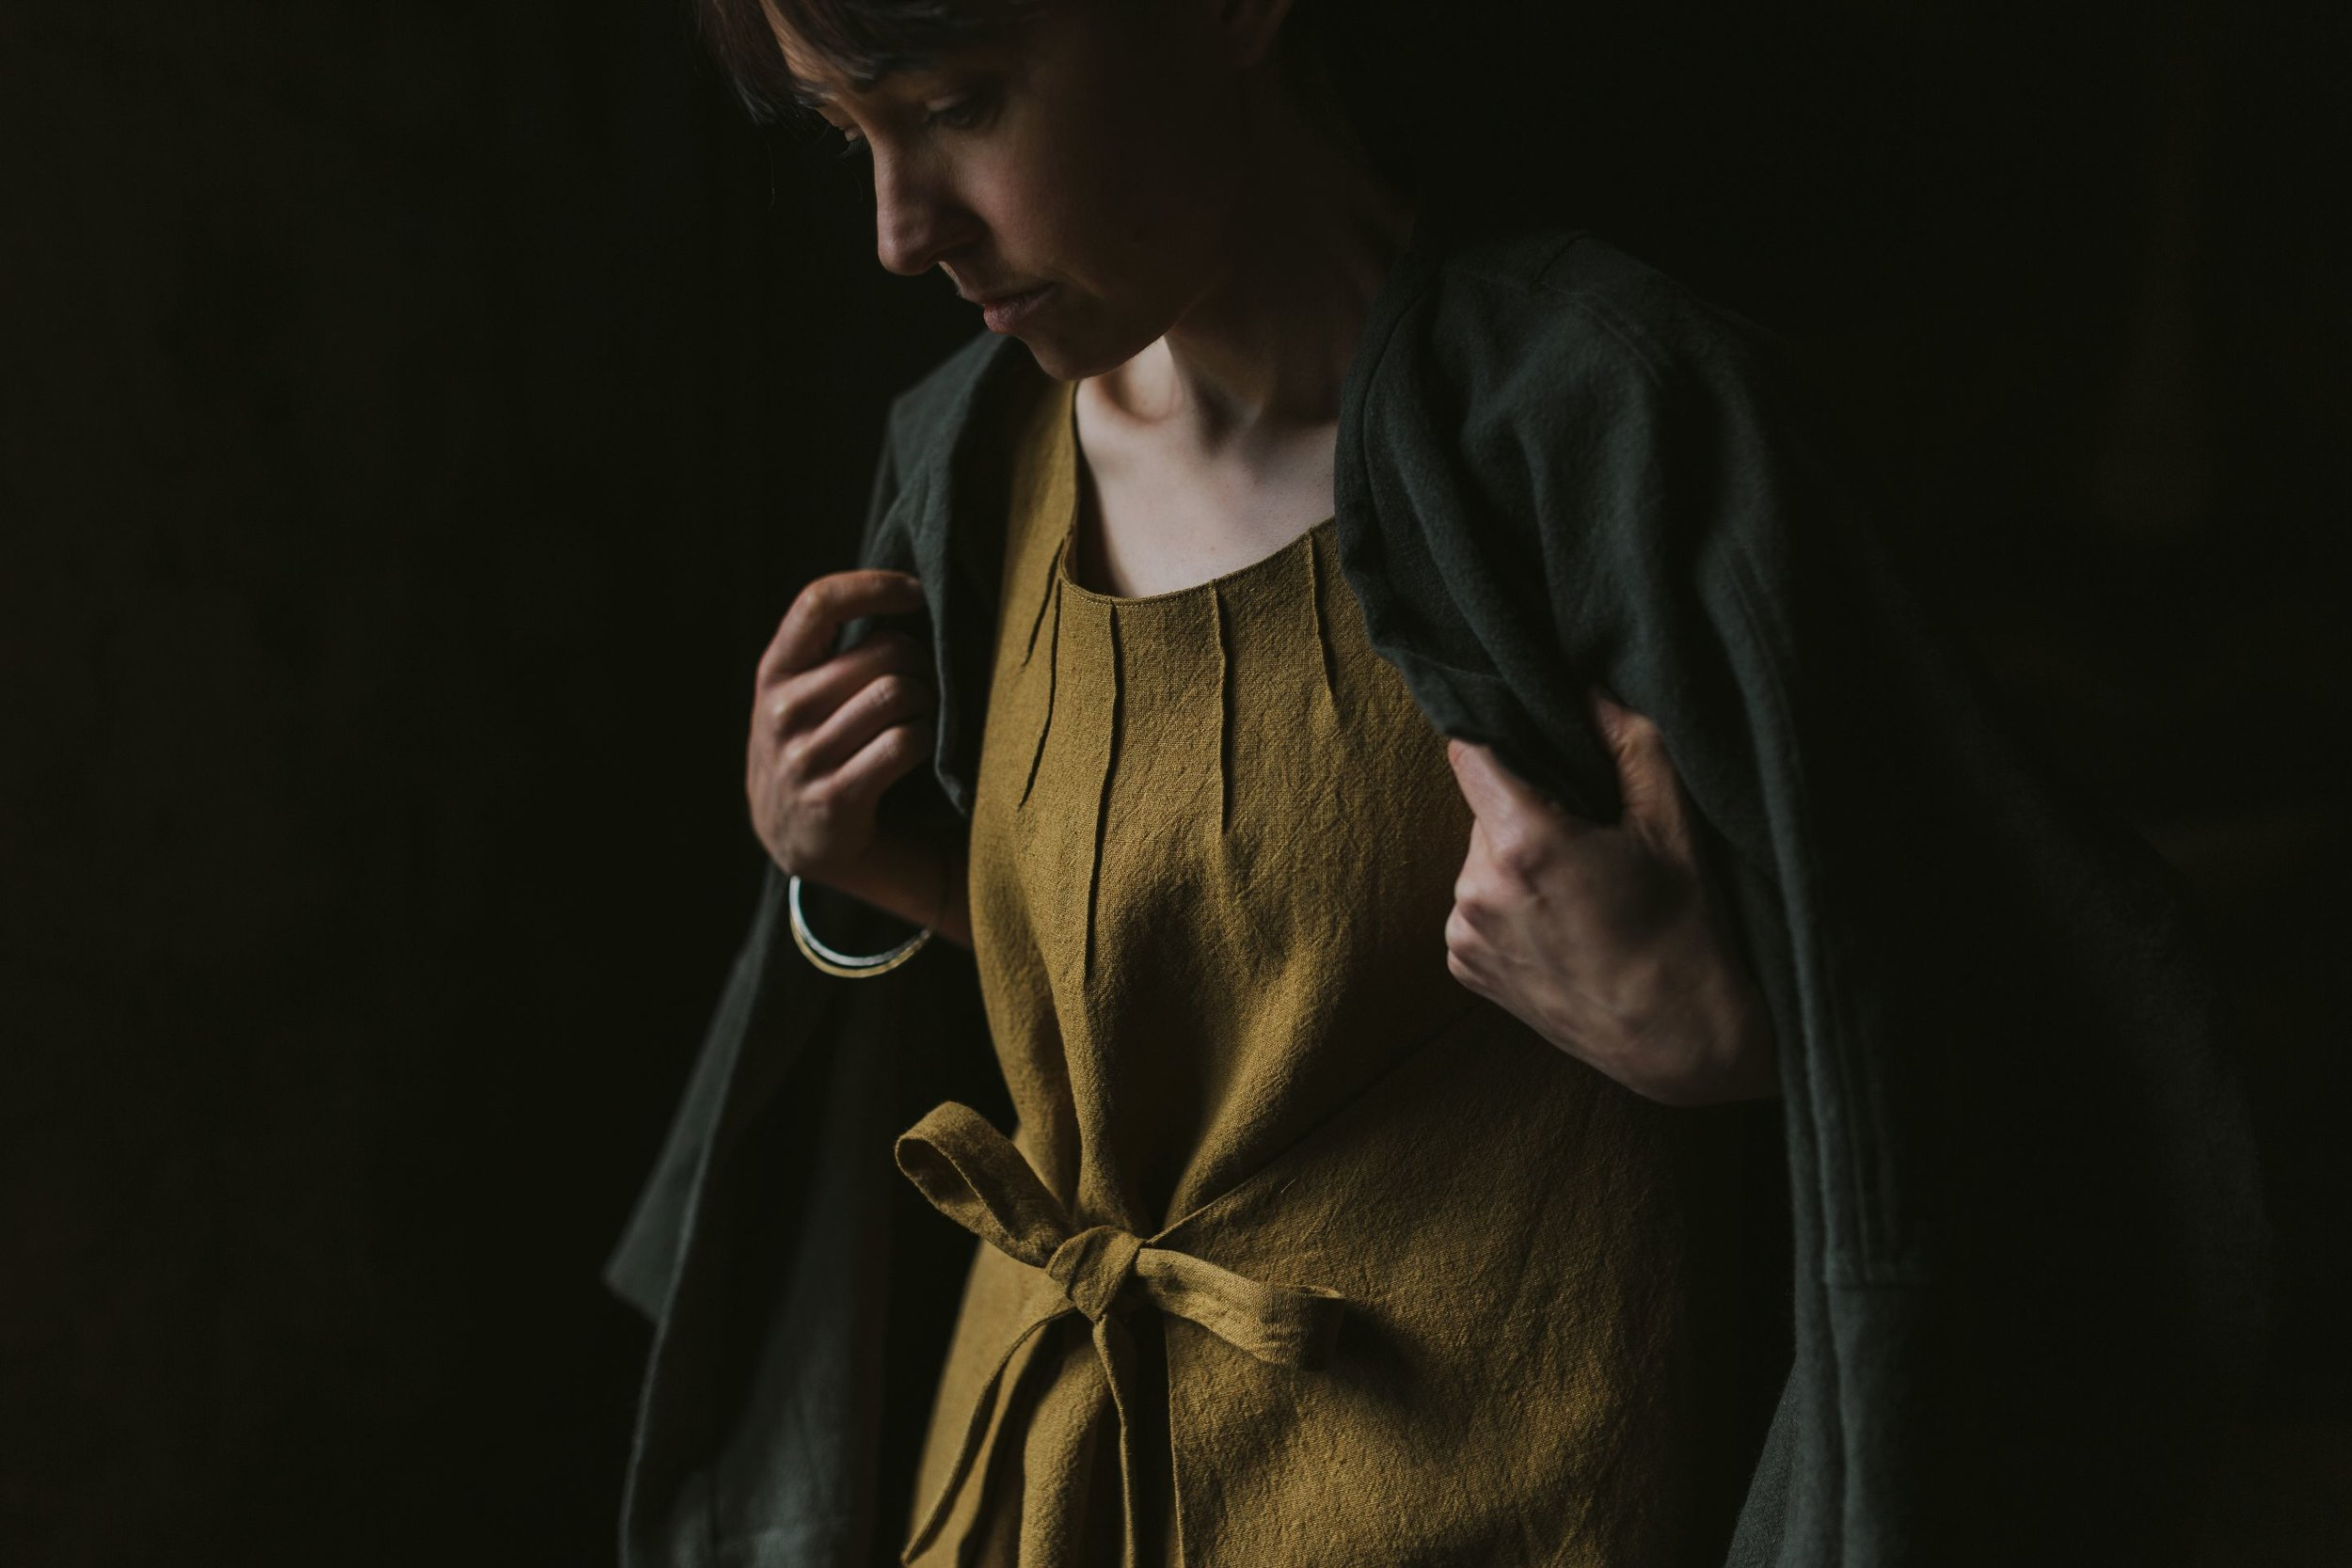 Woman holds collar of jacket over a tunic in a fashion photo shoot.